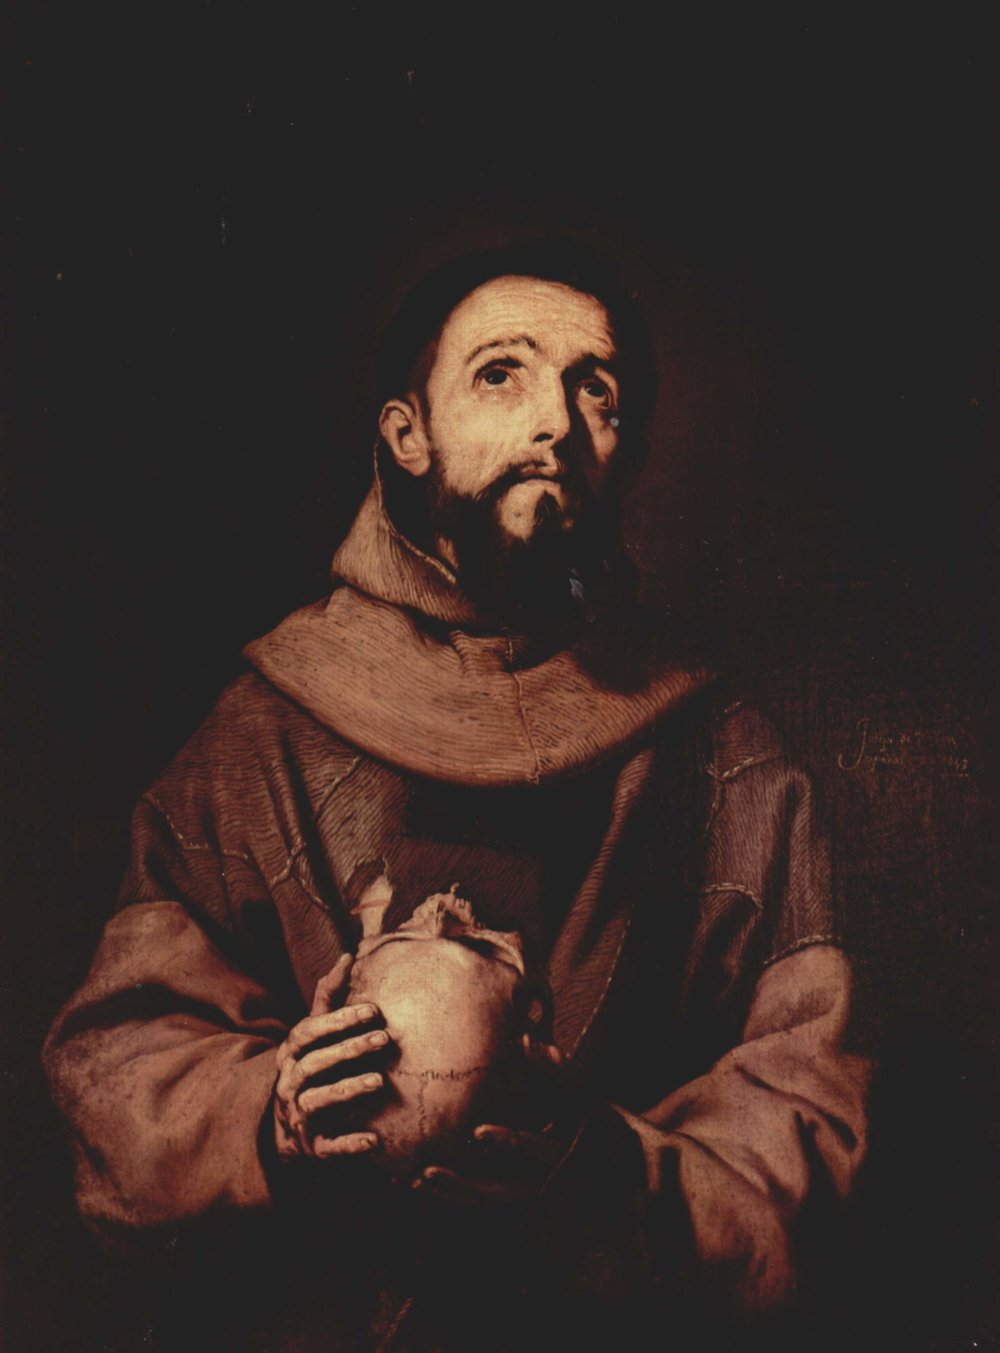 Francis of Assisi , oil painting by Jusepe de Ribera (1643), Palazzo Pitti, Florence, Italy.